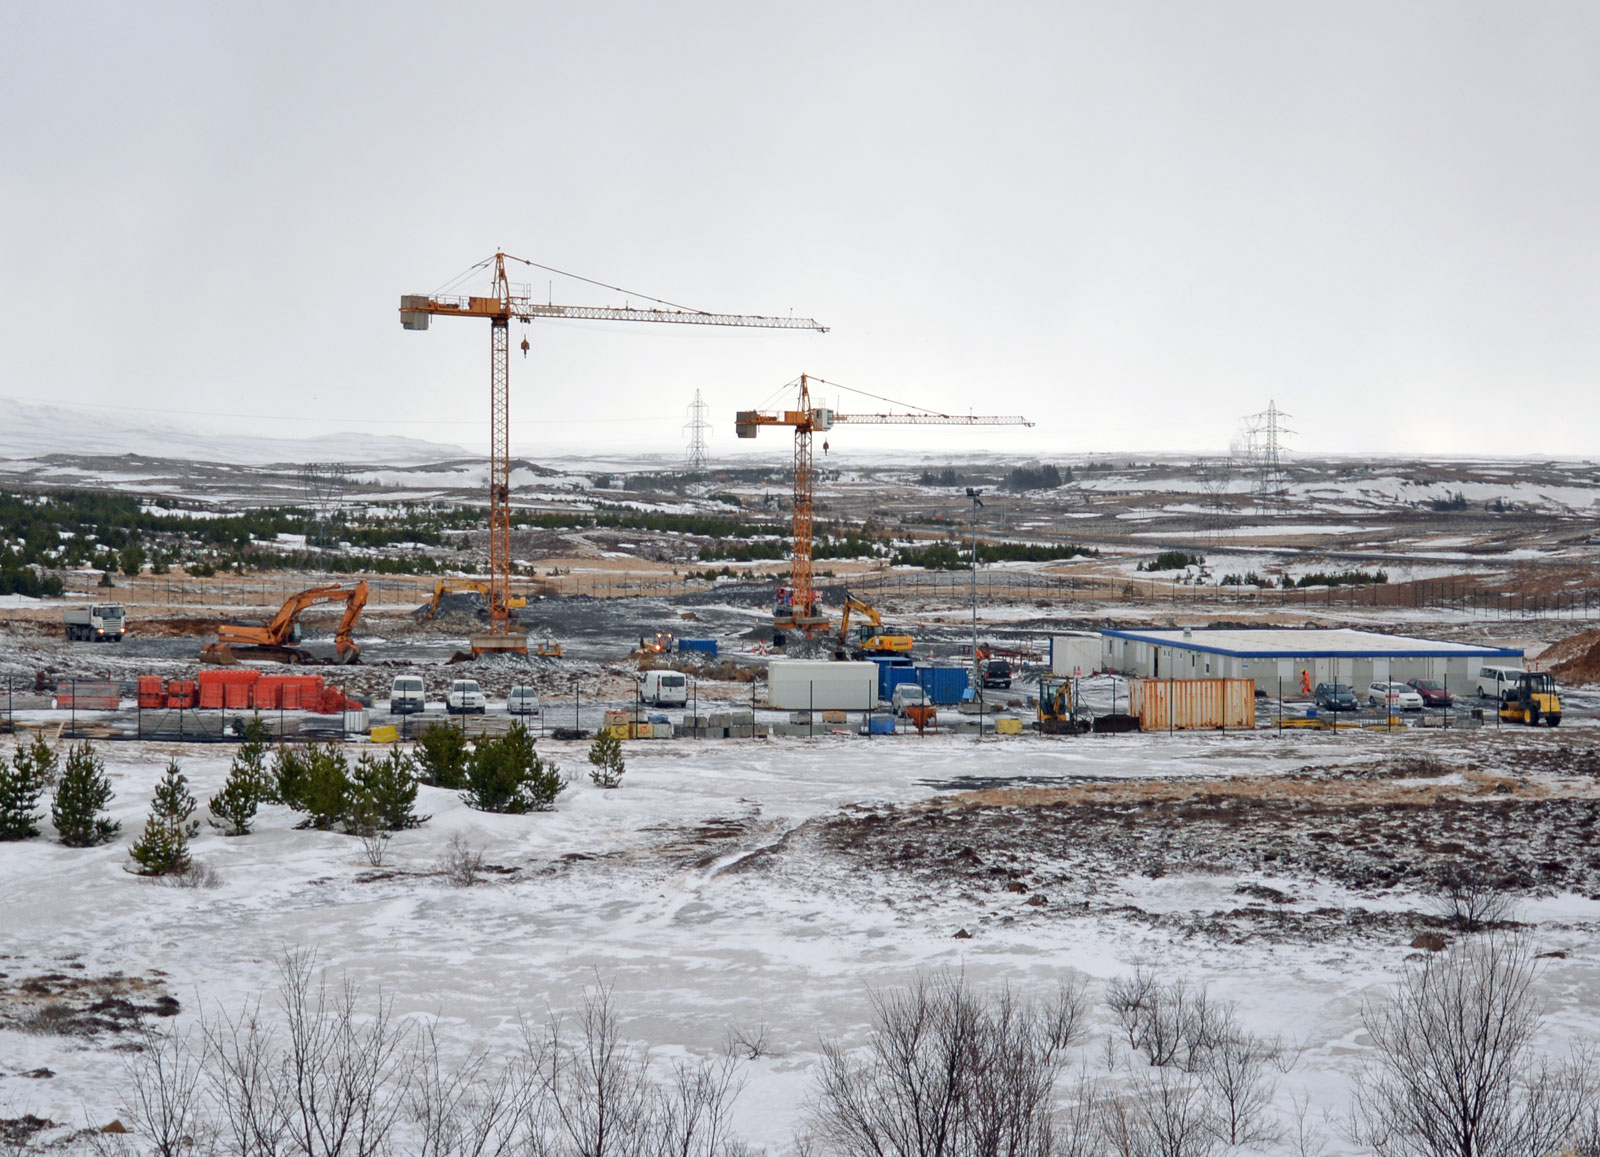 Construction update of the prison in Hólmsheiði